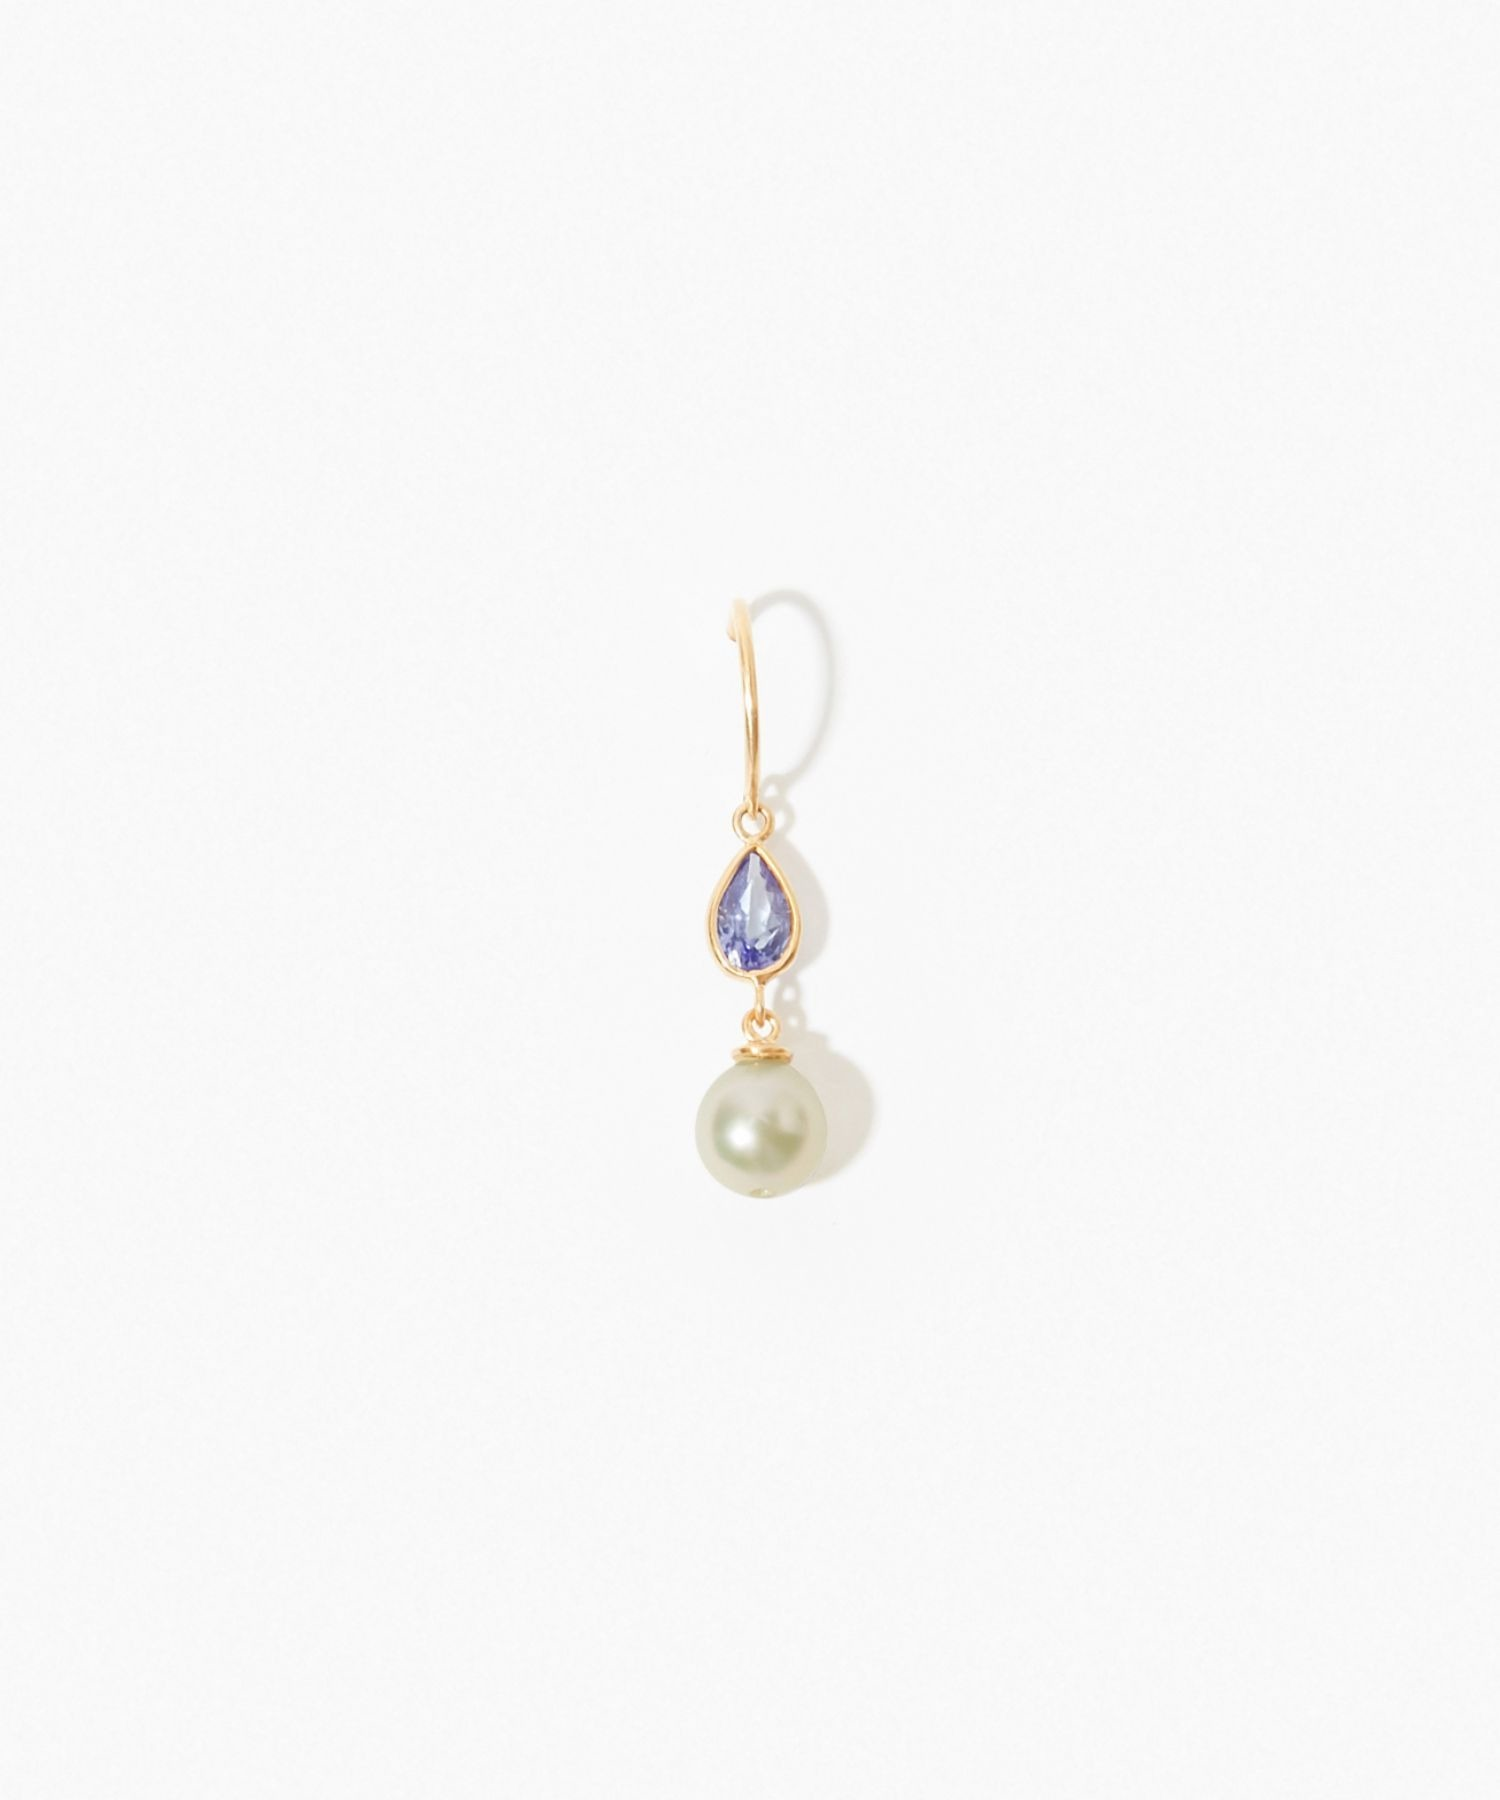 [philia] K10 akoya and pear-shaped tanzanite pierced earring